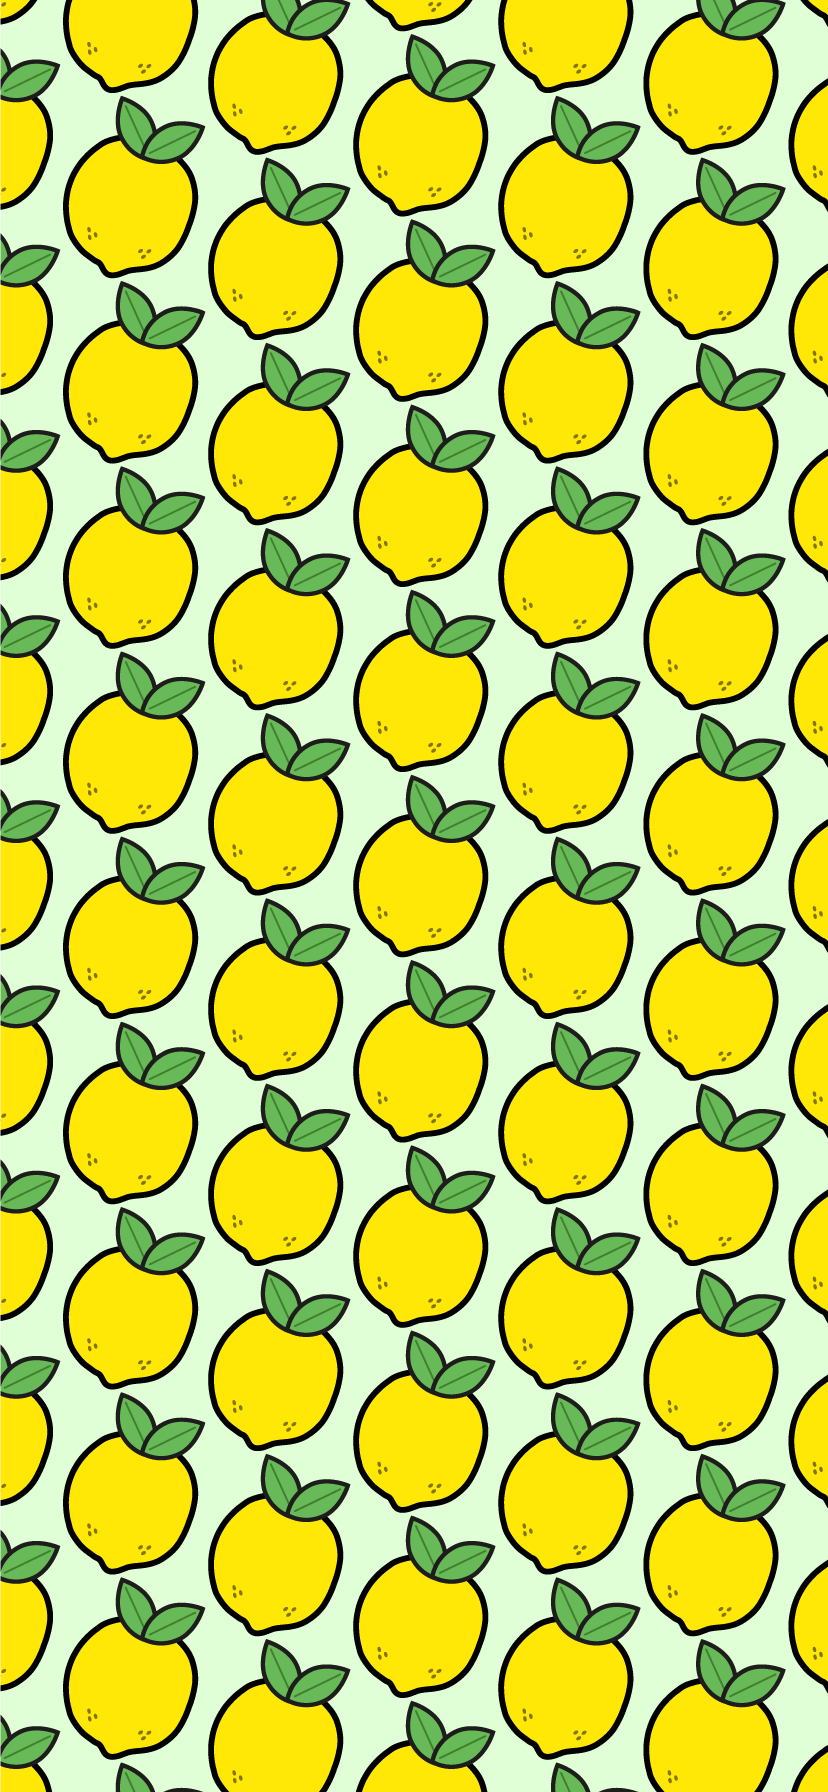 Green Lemon Background Wallpaper For Iphone Xr Lemon Background